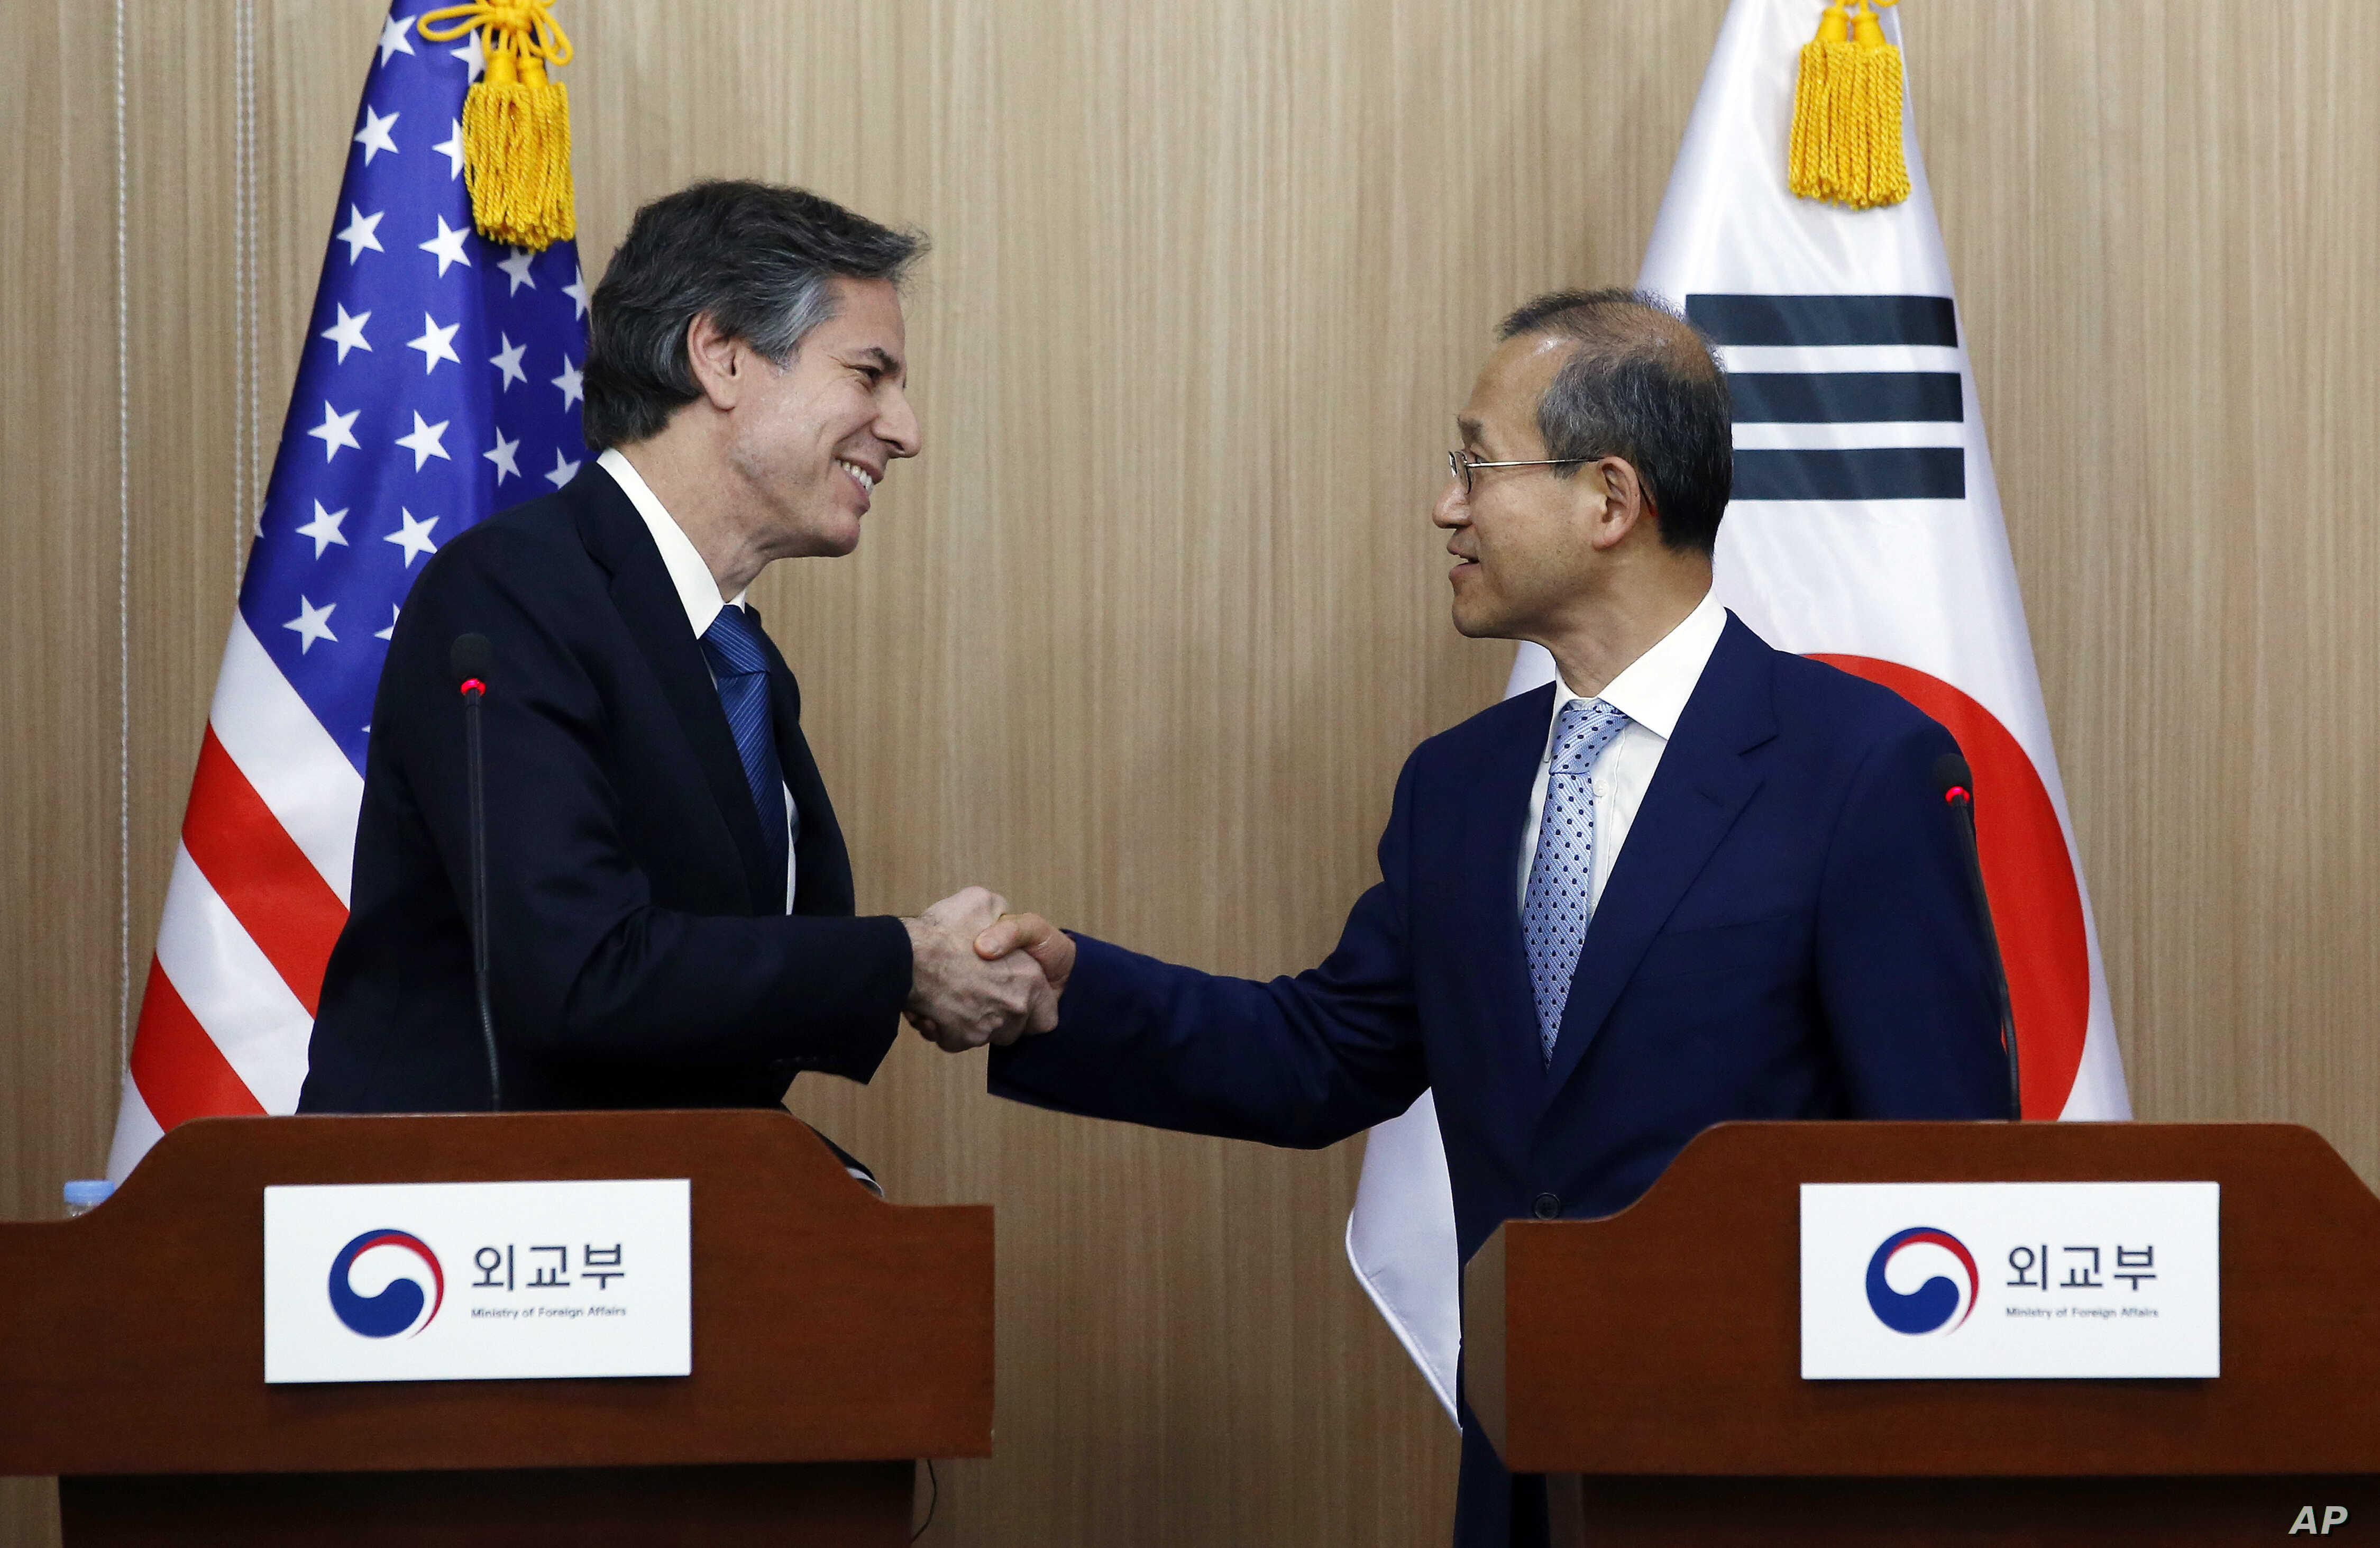 U.S. Deputy Secretary of State Antony Blinken, left, shakes hands with South Korea Vice Foreign Minister Lim Sung-nam after finishing a press conference in Seoul, South Korea,  April 19, 2016.